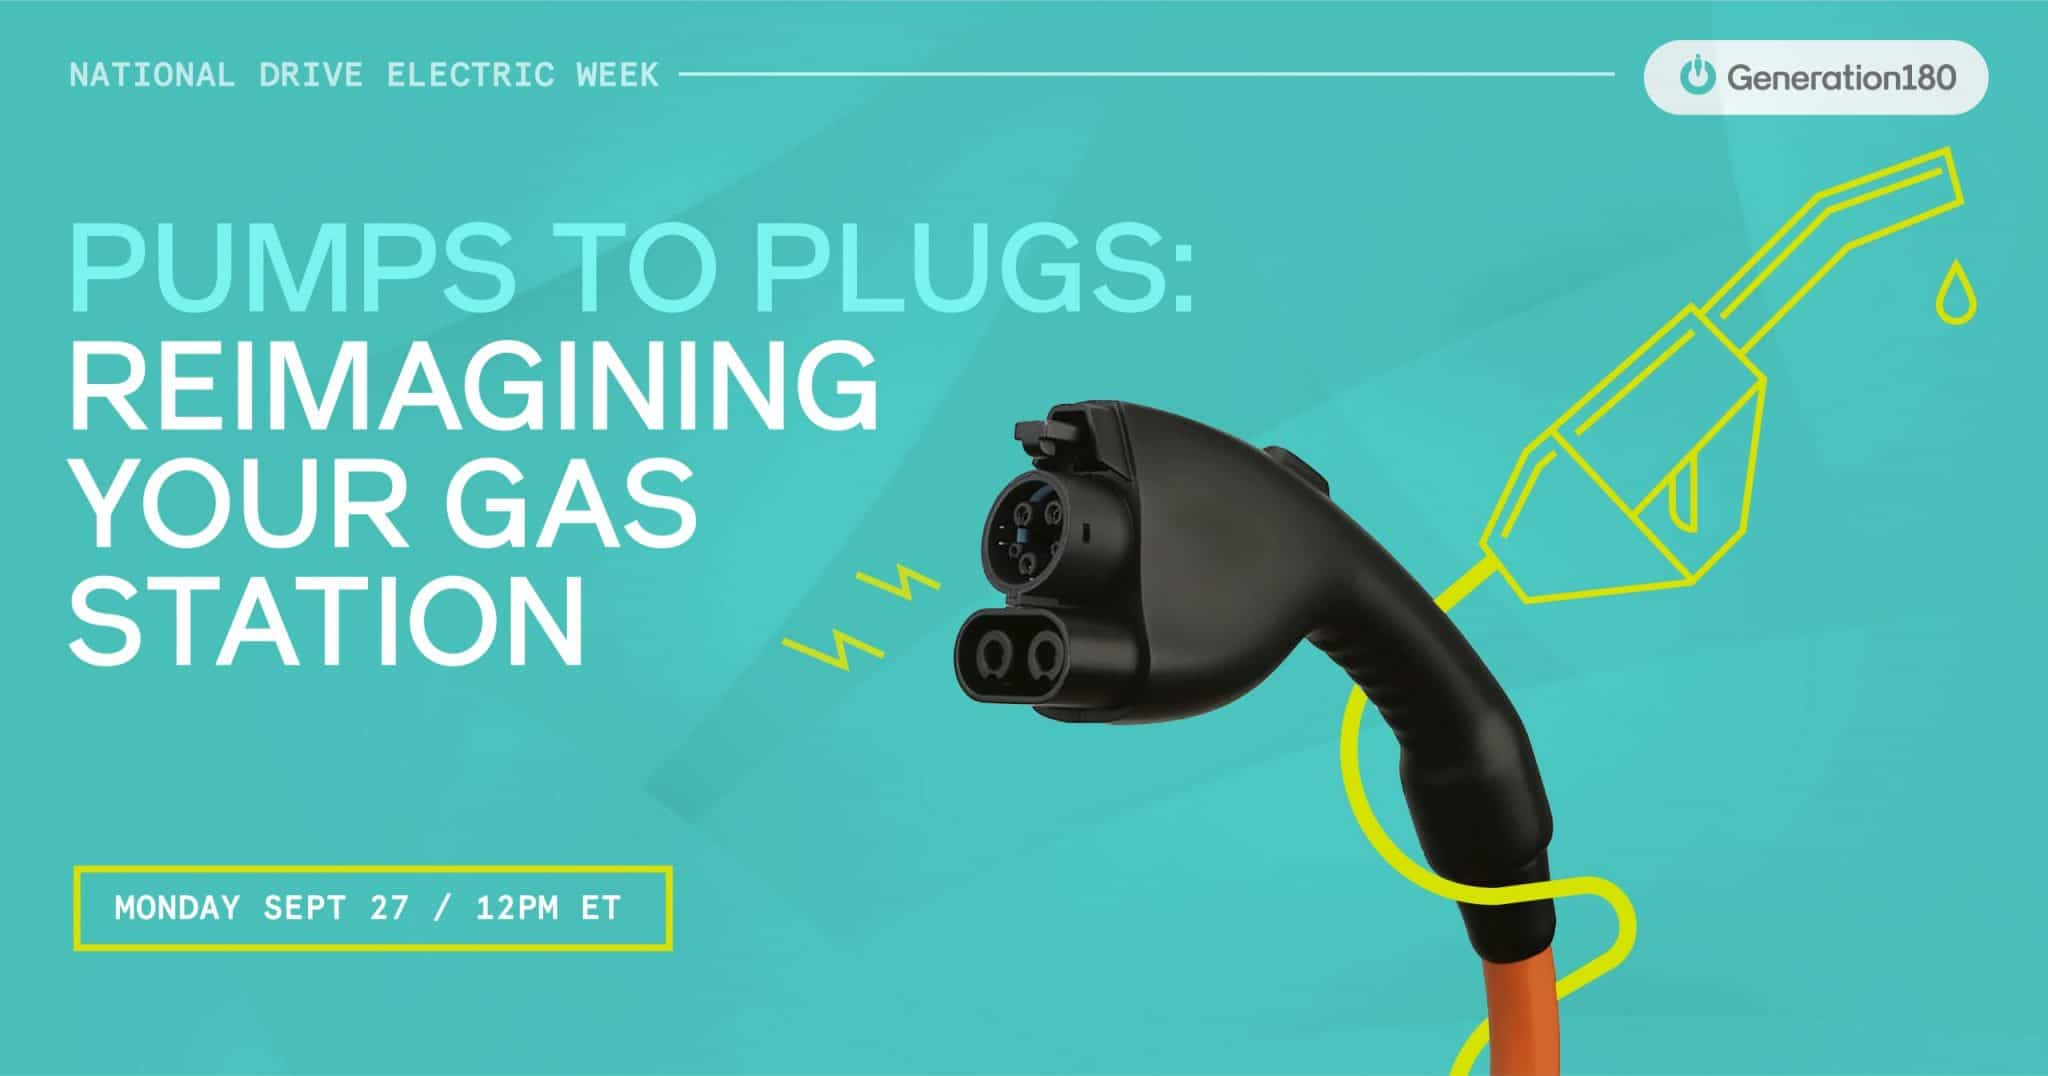 From pumps to plugs: reimagining your gas station